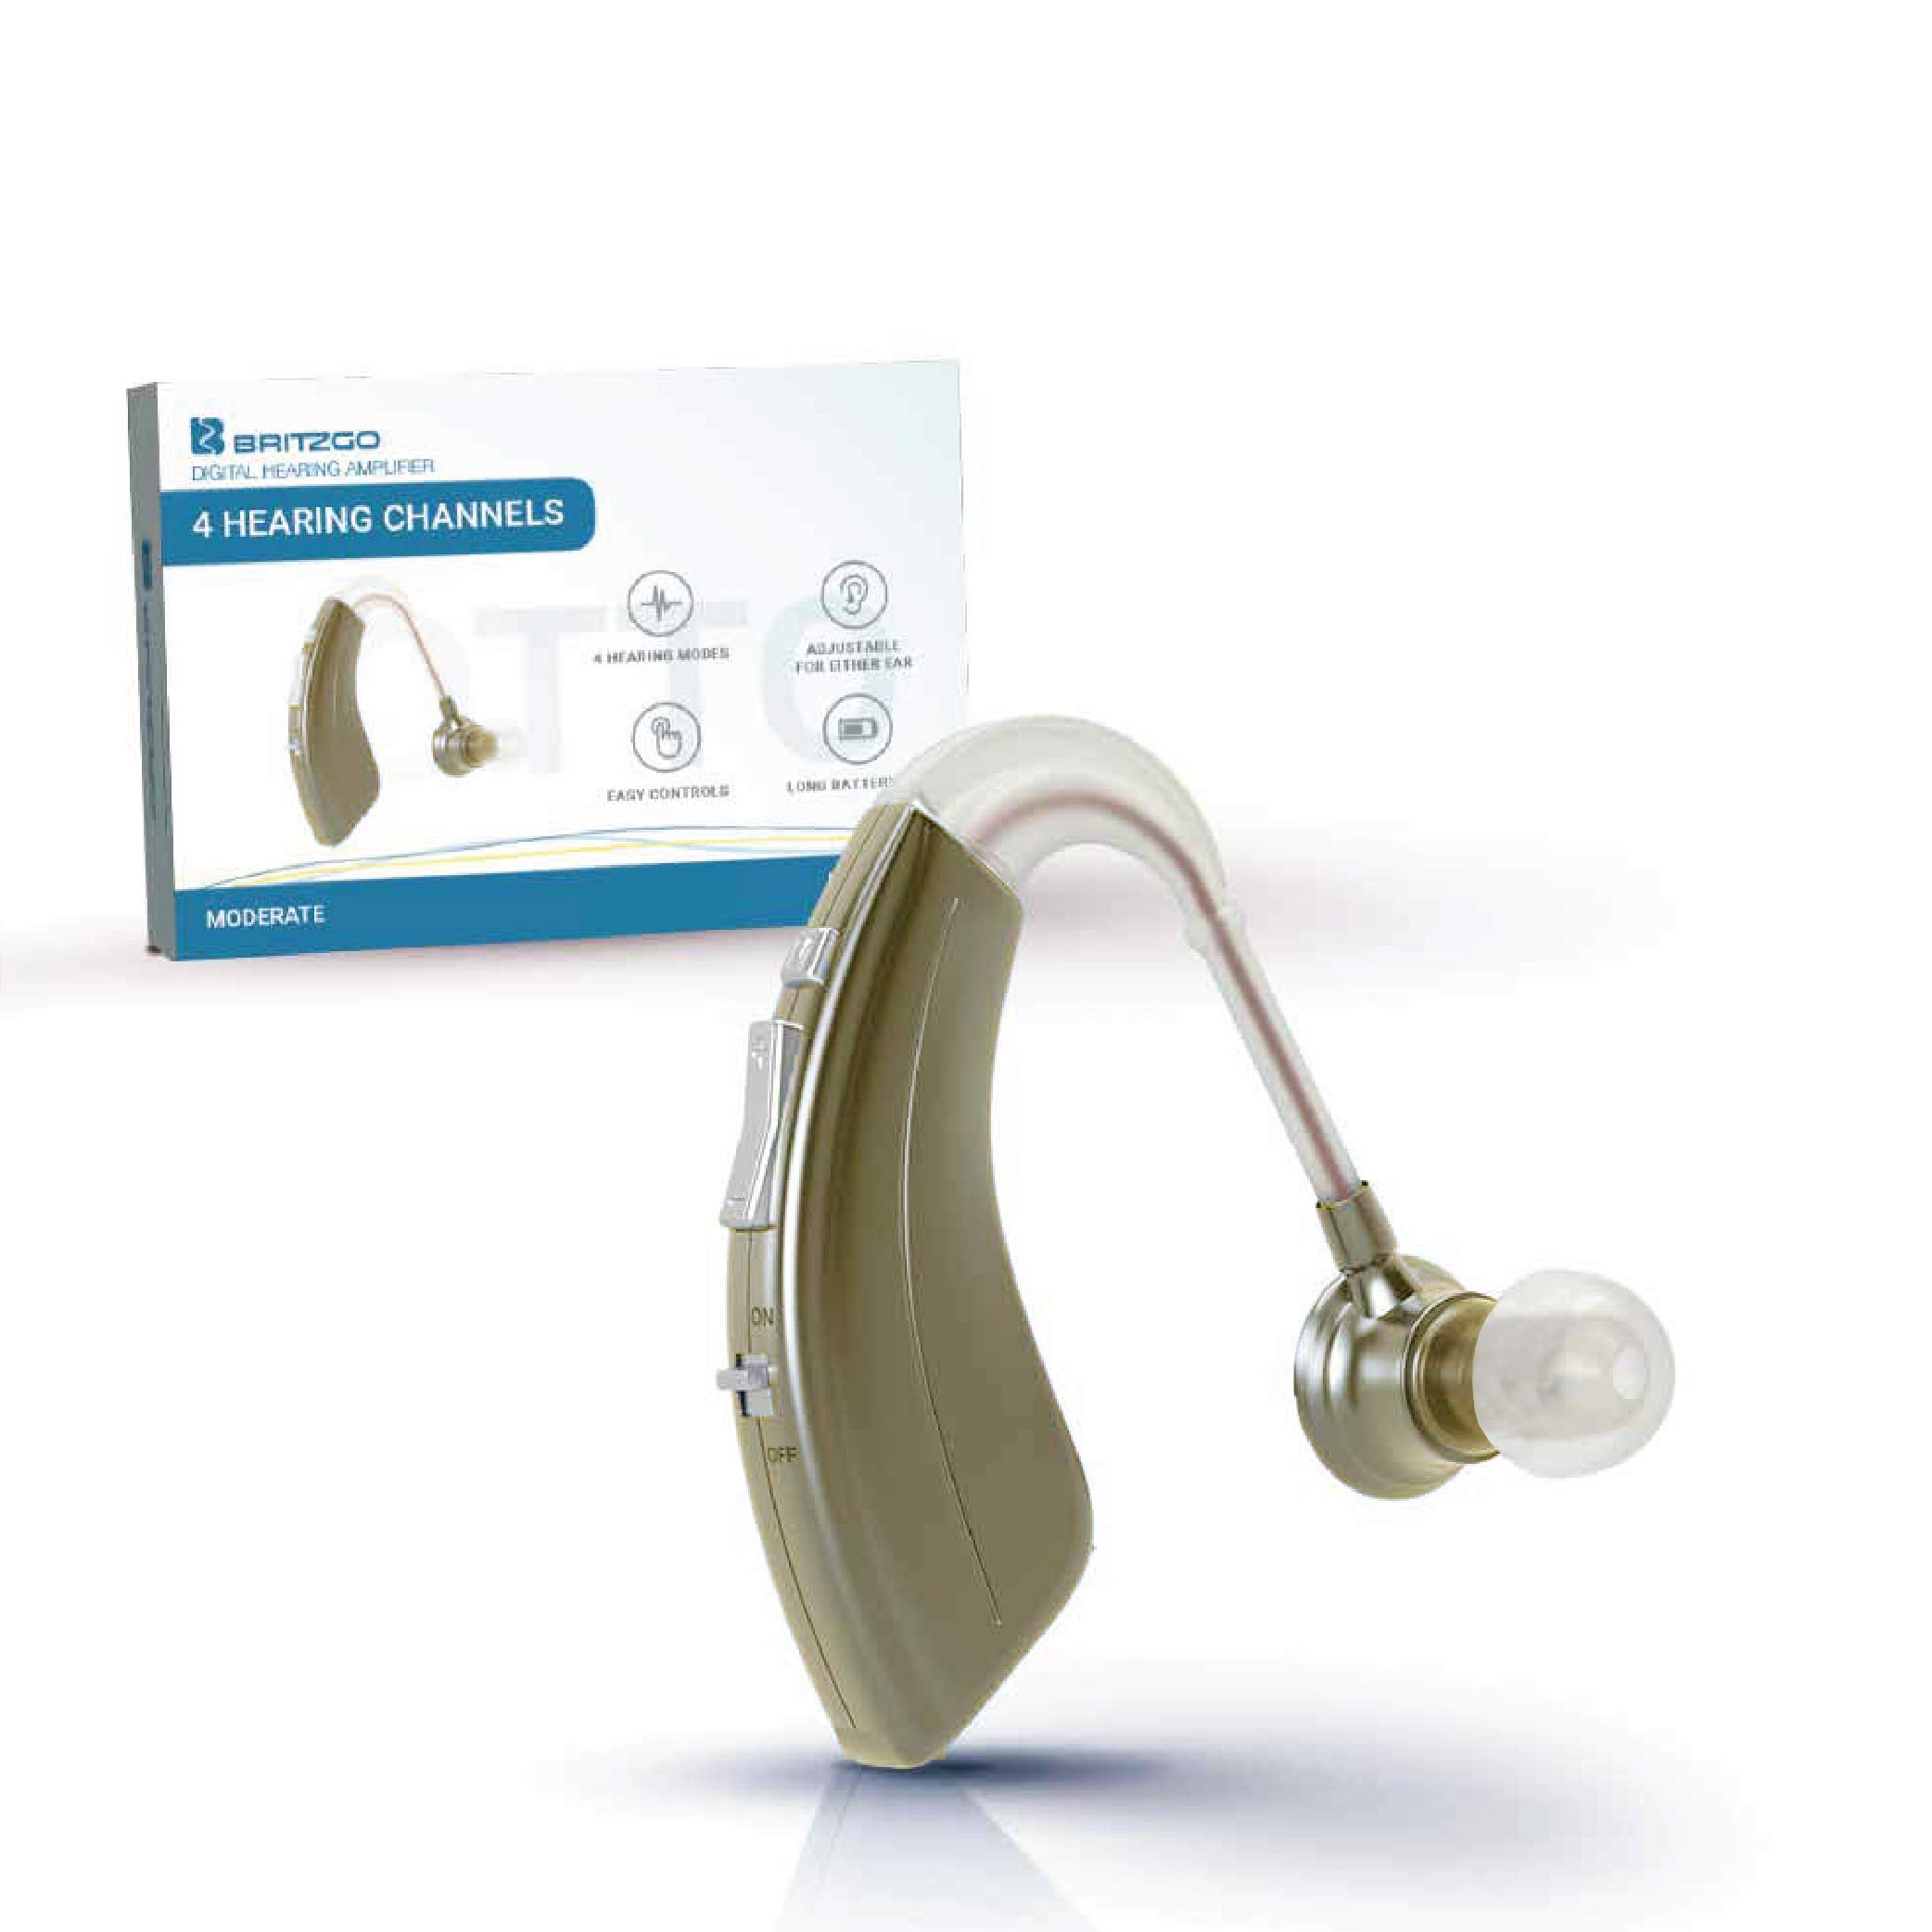 Britzgo BHA-220S Hearing Amplifier, Modern and Fashion Designed Adjustable Tube to Fit Both Ears, Silver Gray by Britzgo